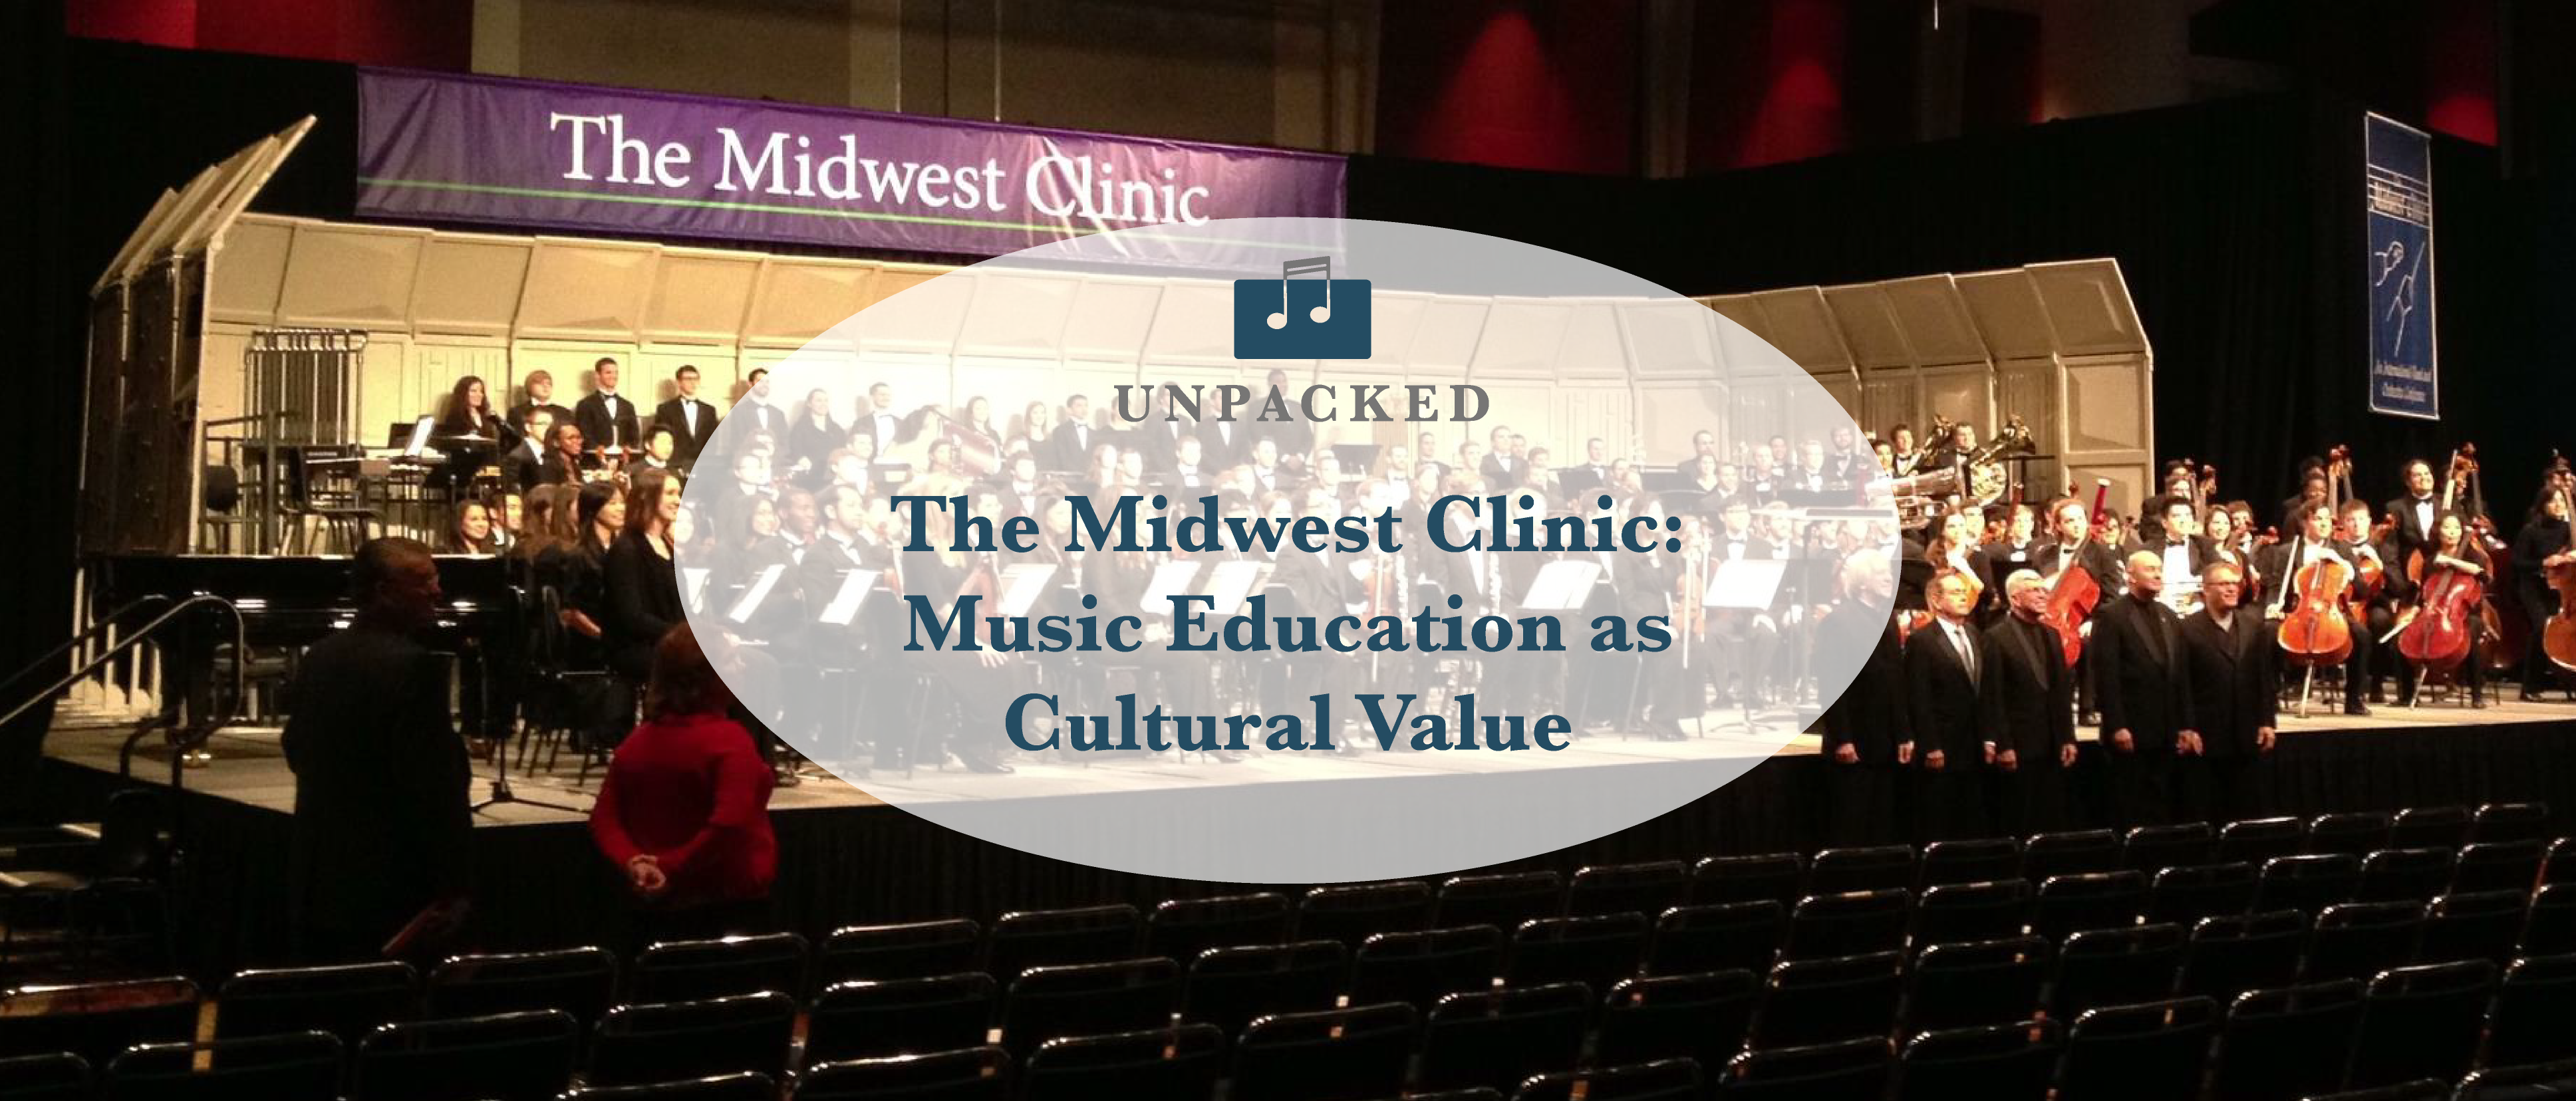 The Midwest Clinic: Music Education as Cultural Value